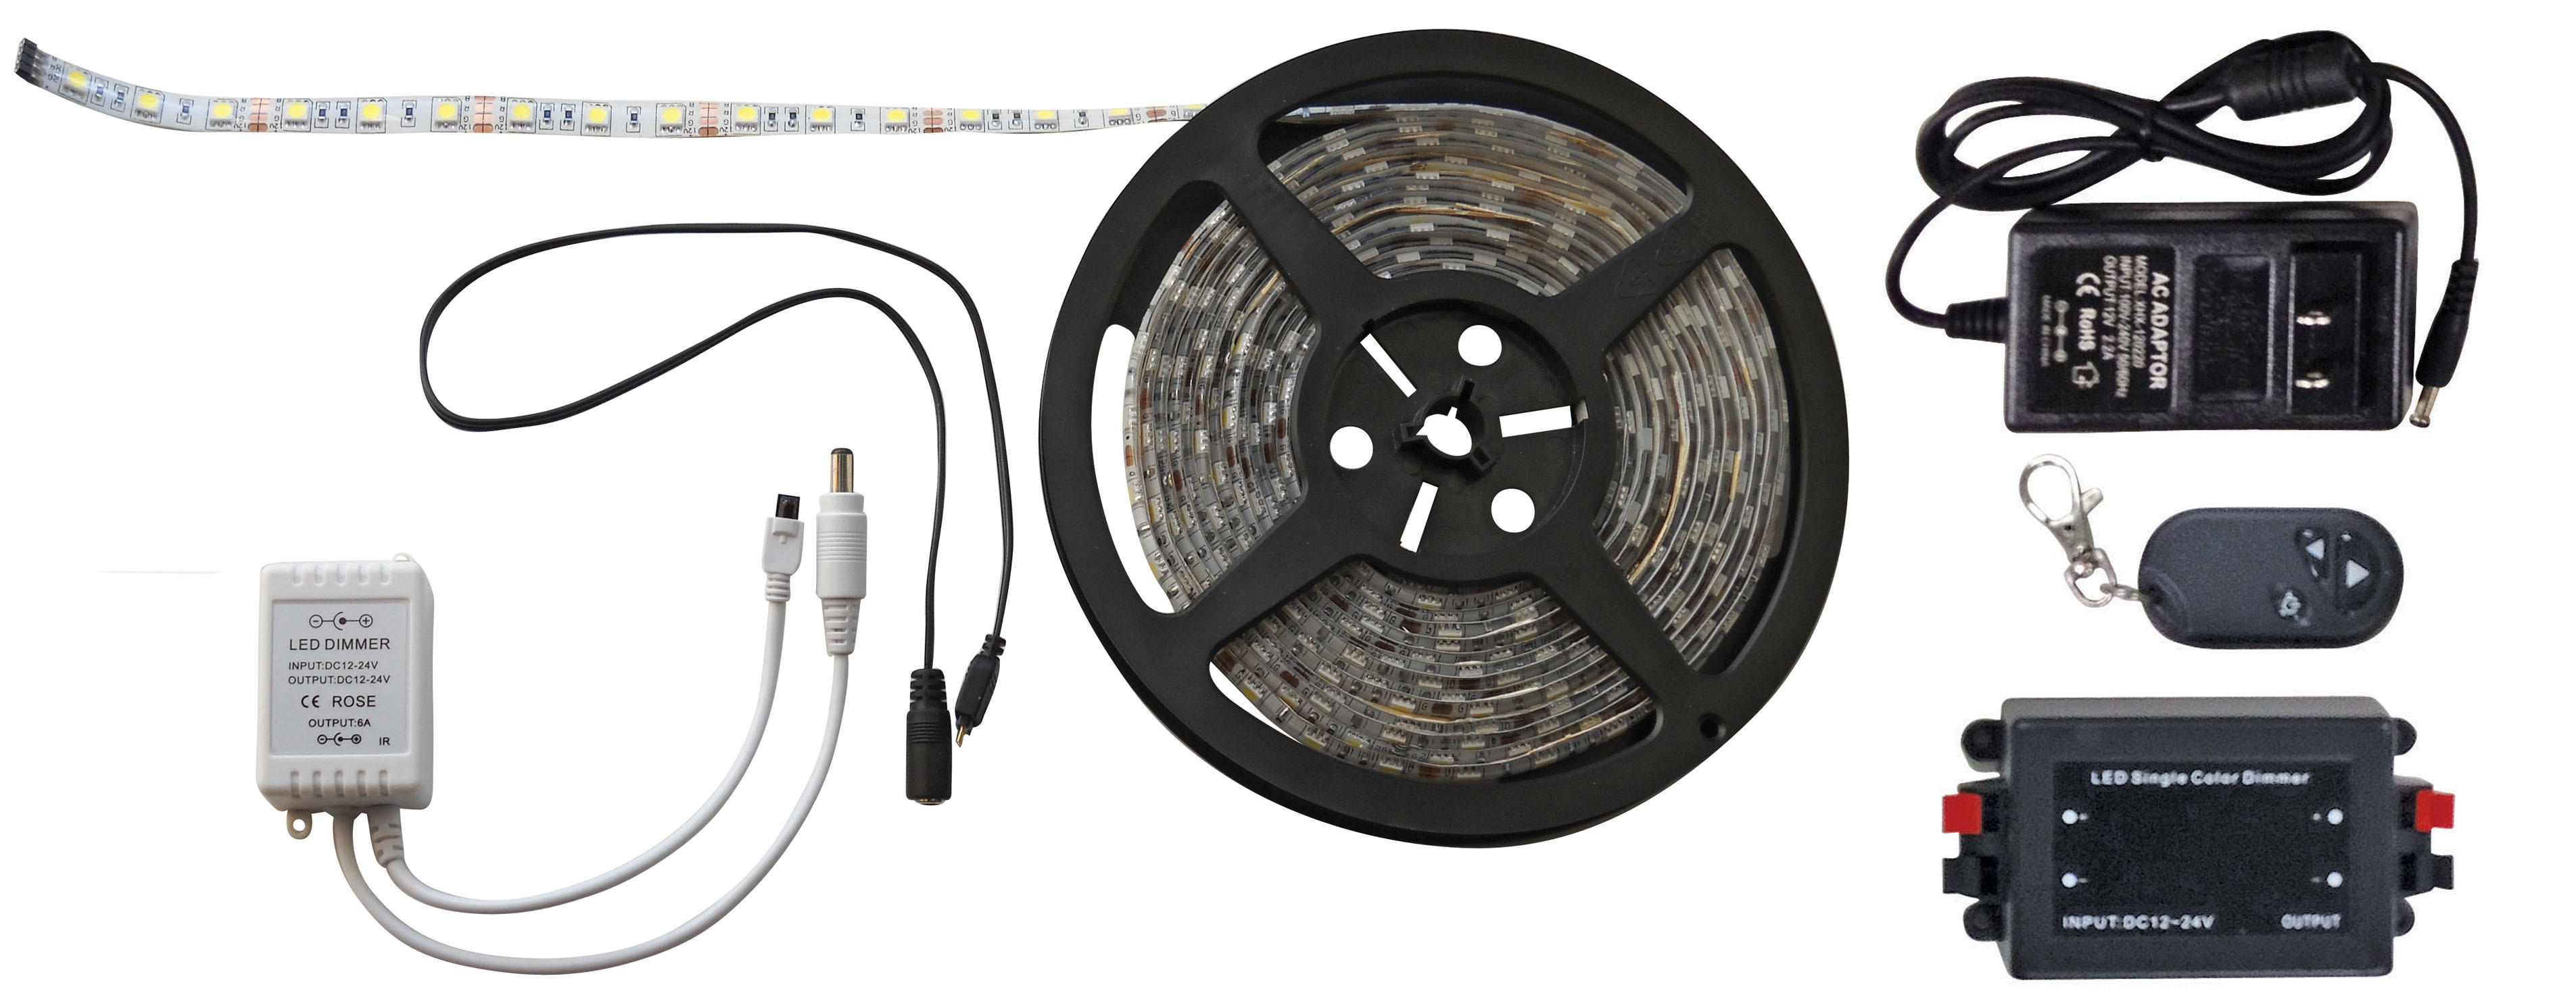 White 16 Foot LED Strip Light  with RF Remote 52686-RF